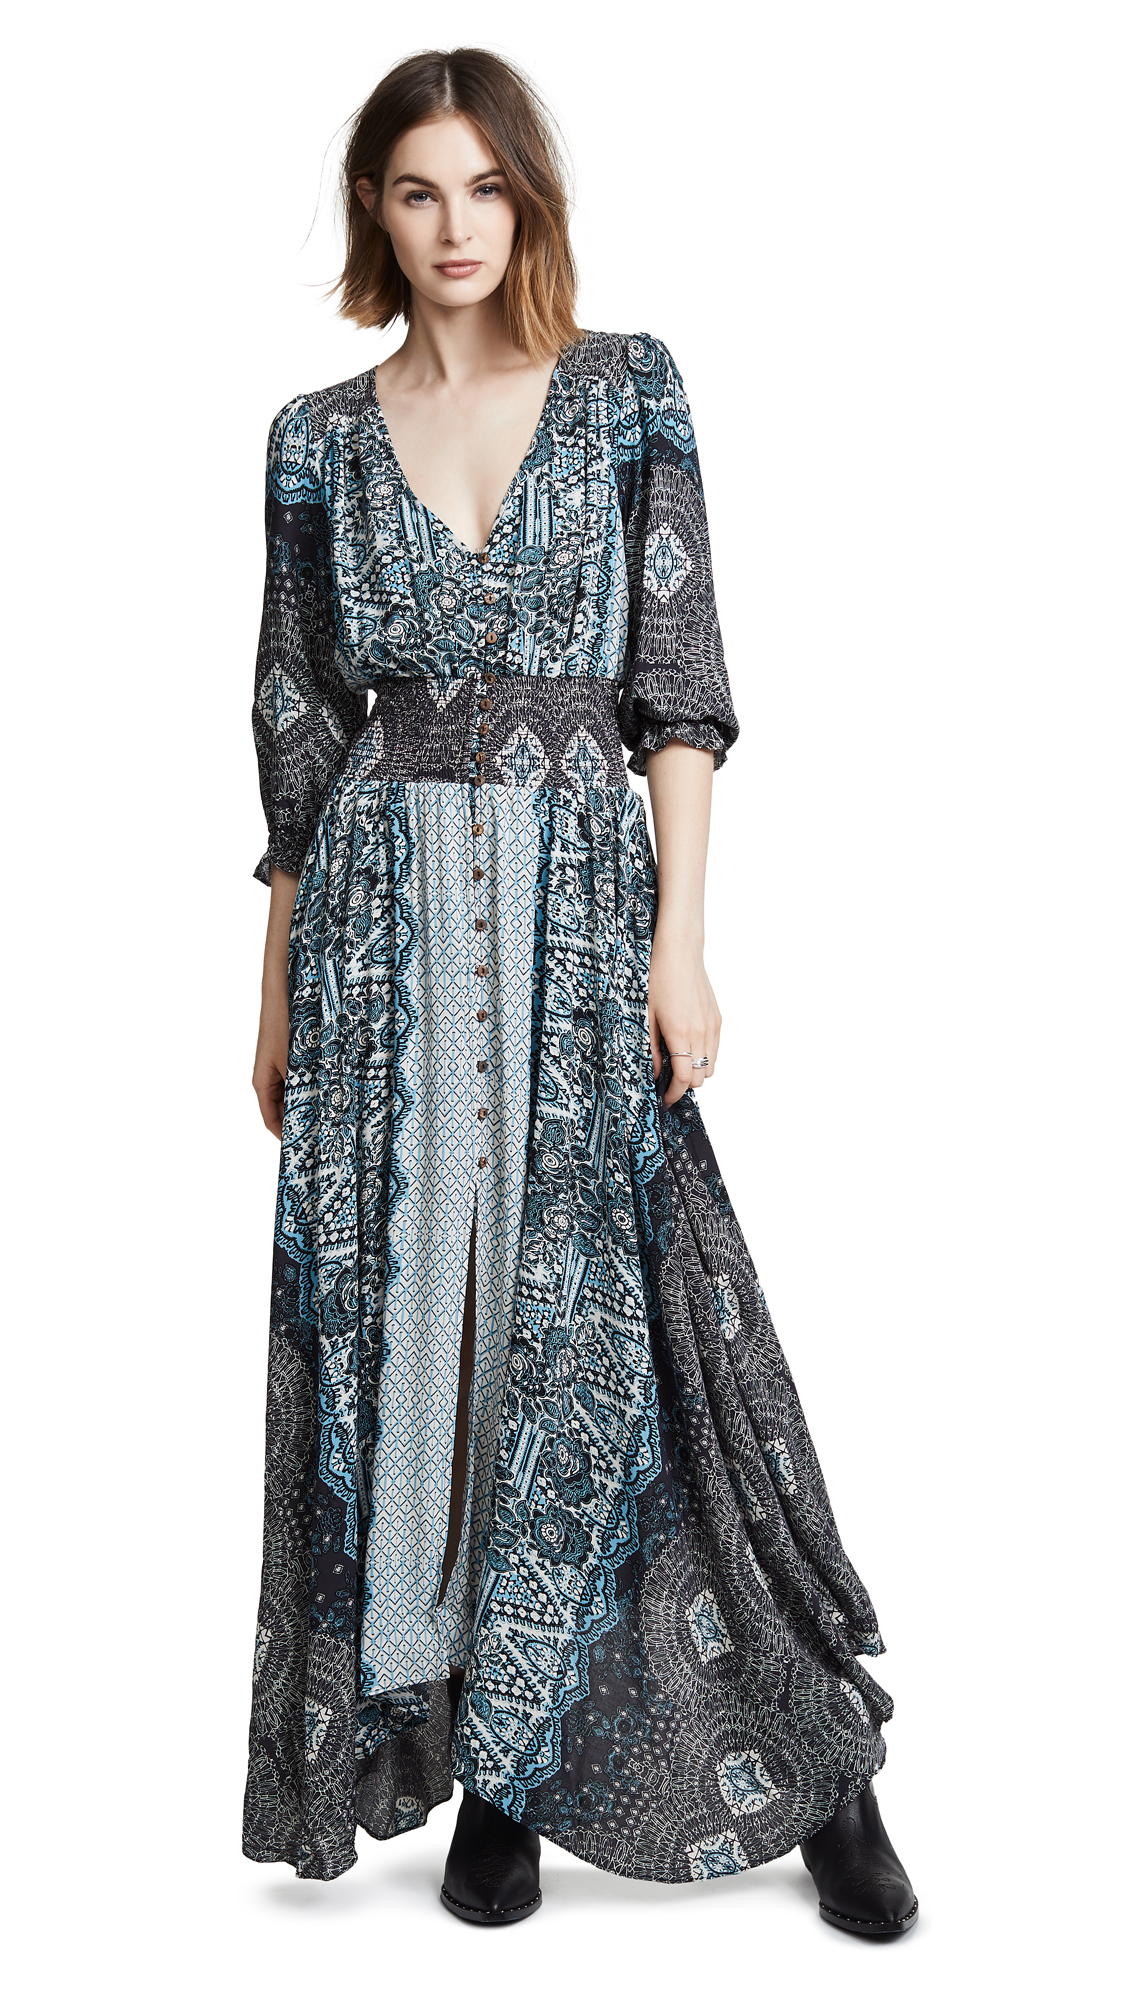 Free People Mexicali Rose Maxi Dress In Black